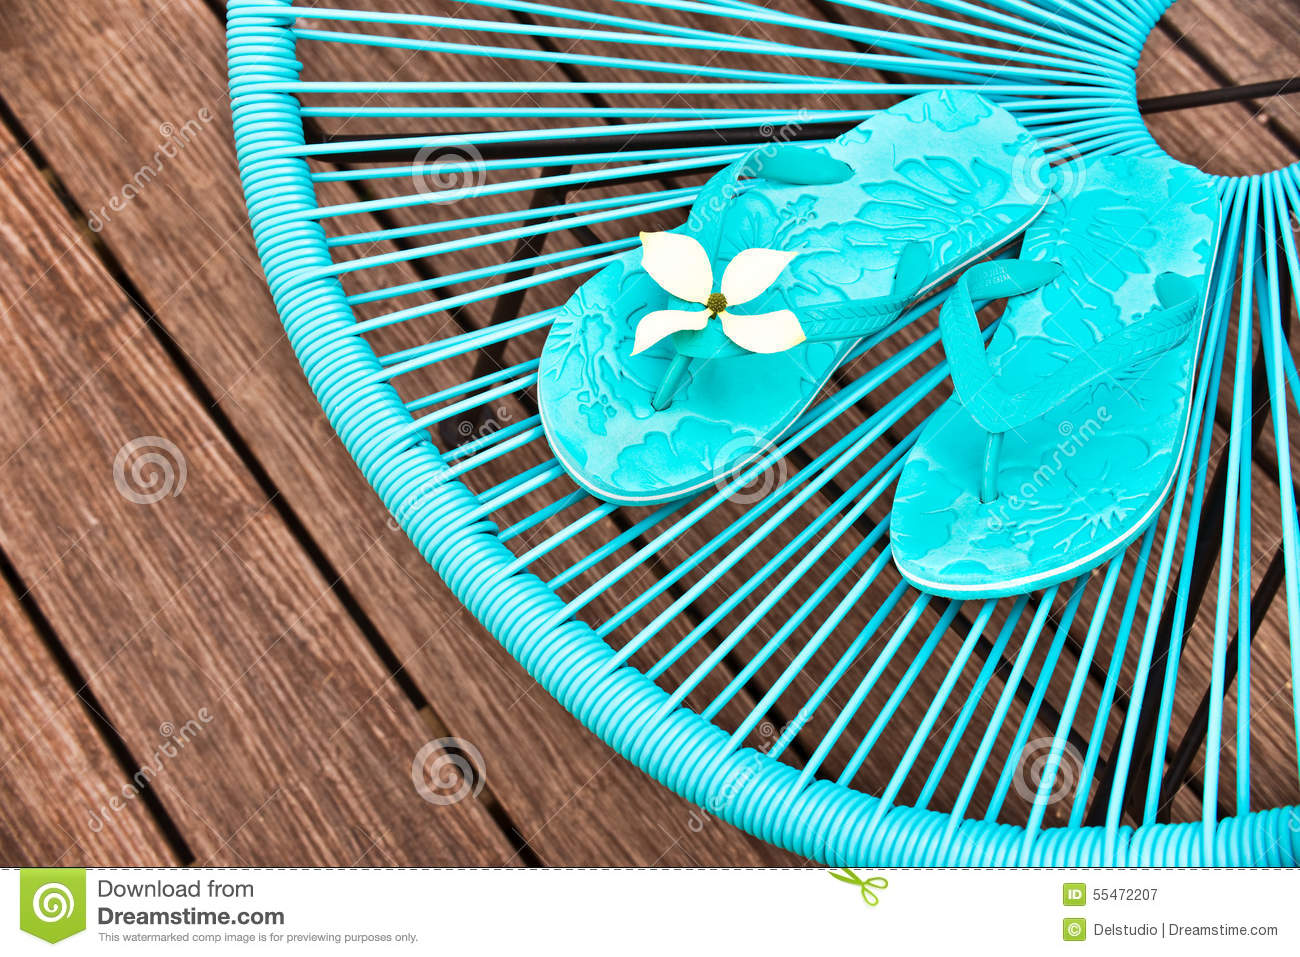 Flip Flop Chair Turquoise Blue Garden Chair And Flip Flops Stock Photo Image